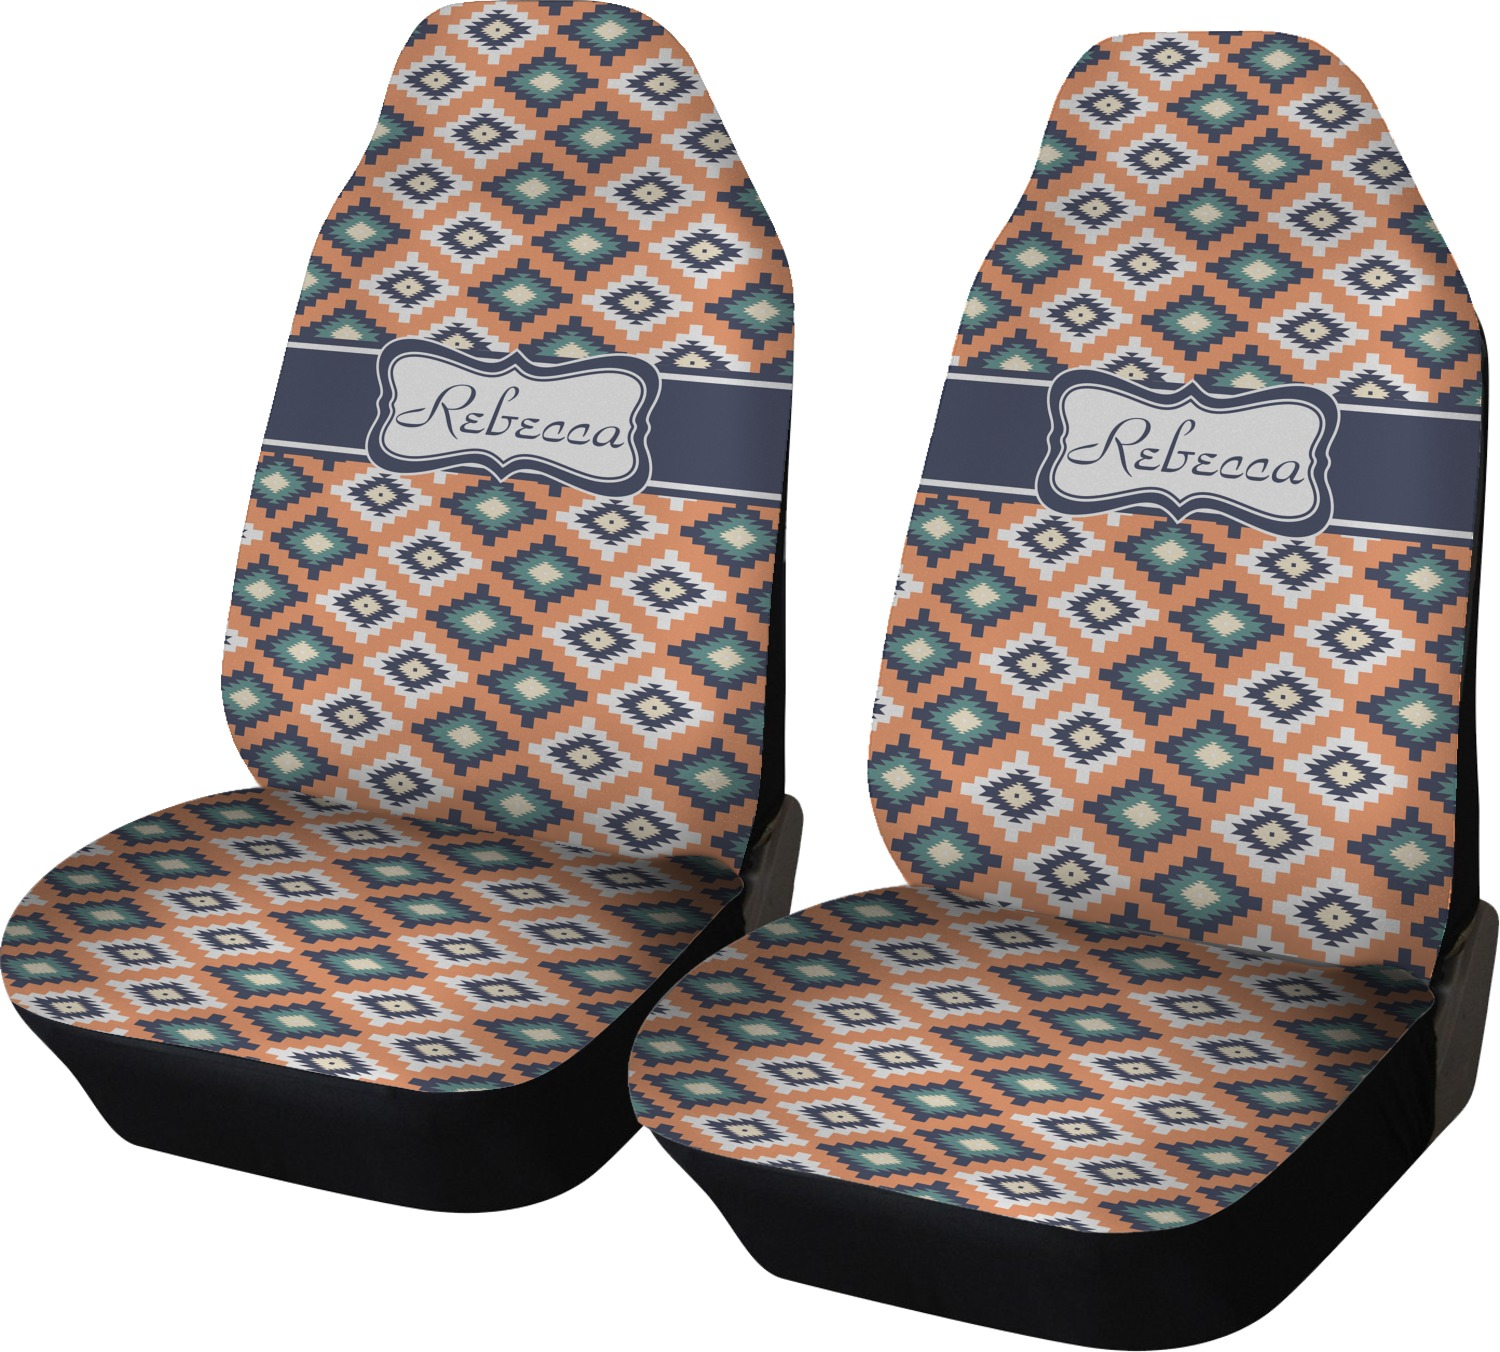 Gender Neutral Car Seat Covers